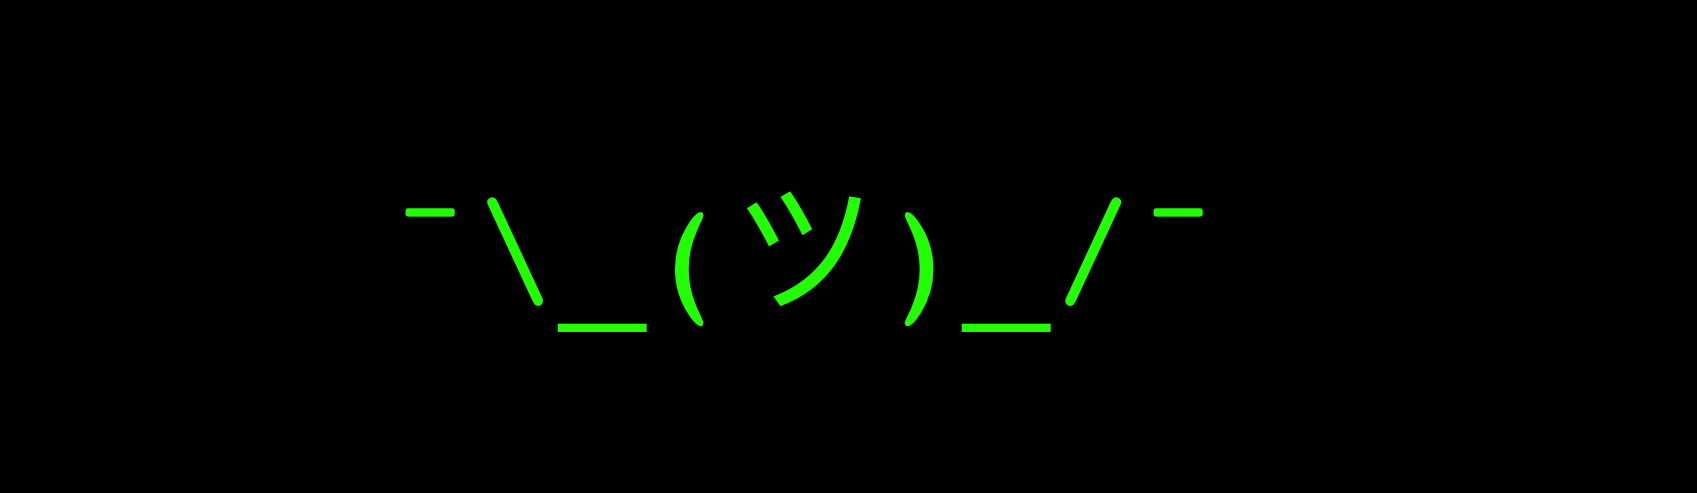 A shrug represented by ASCII characters